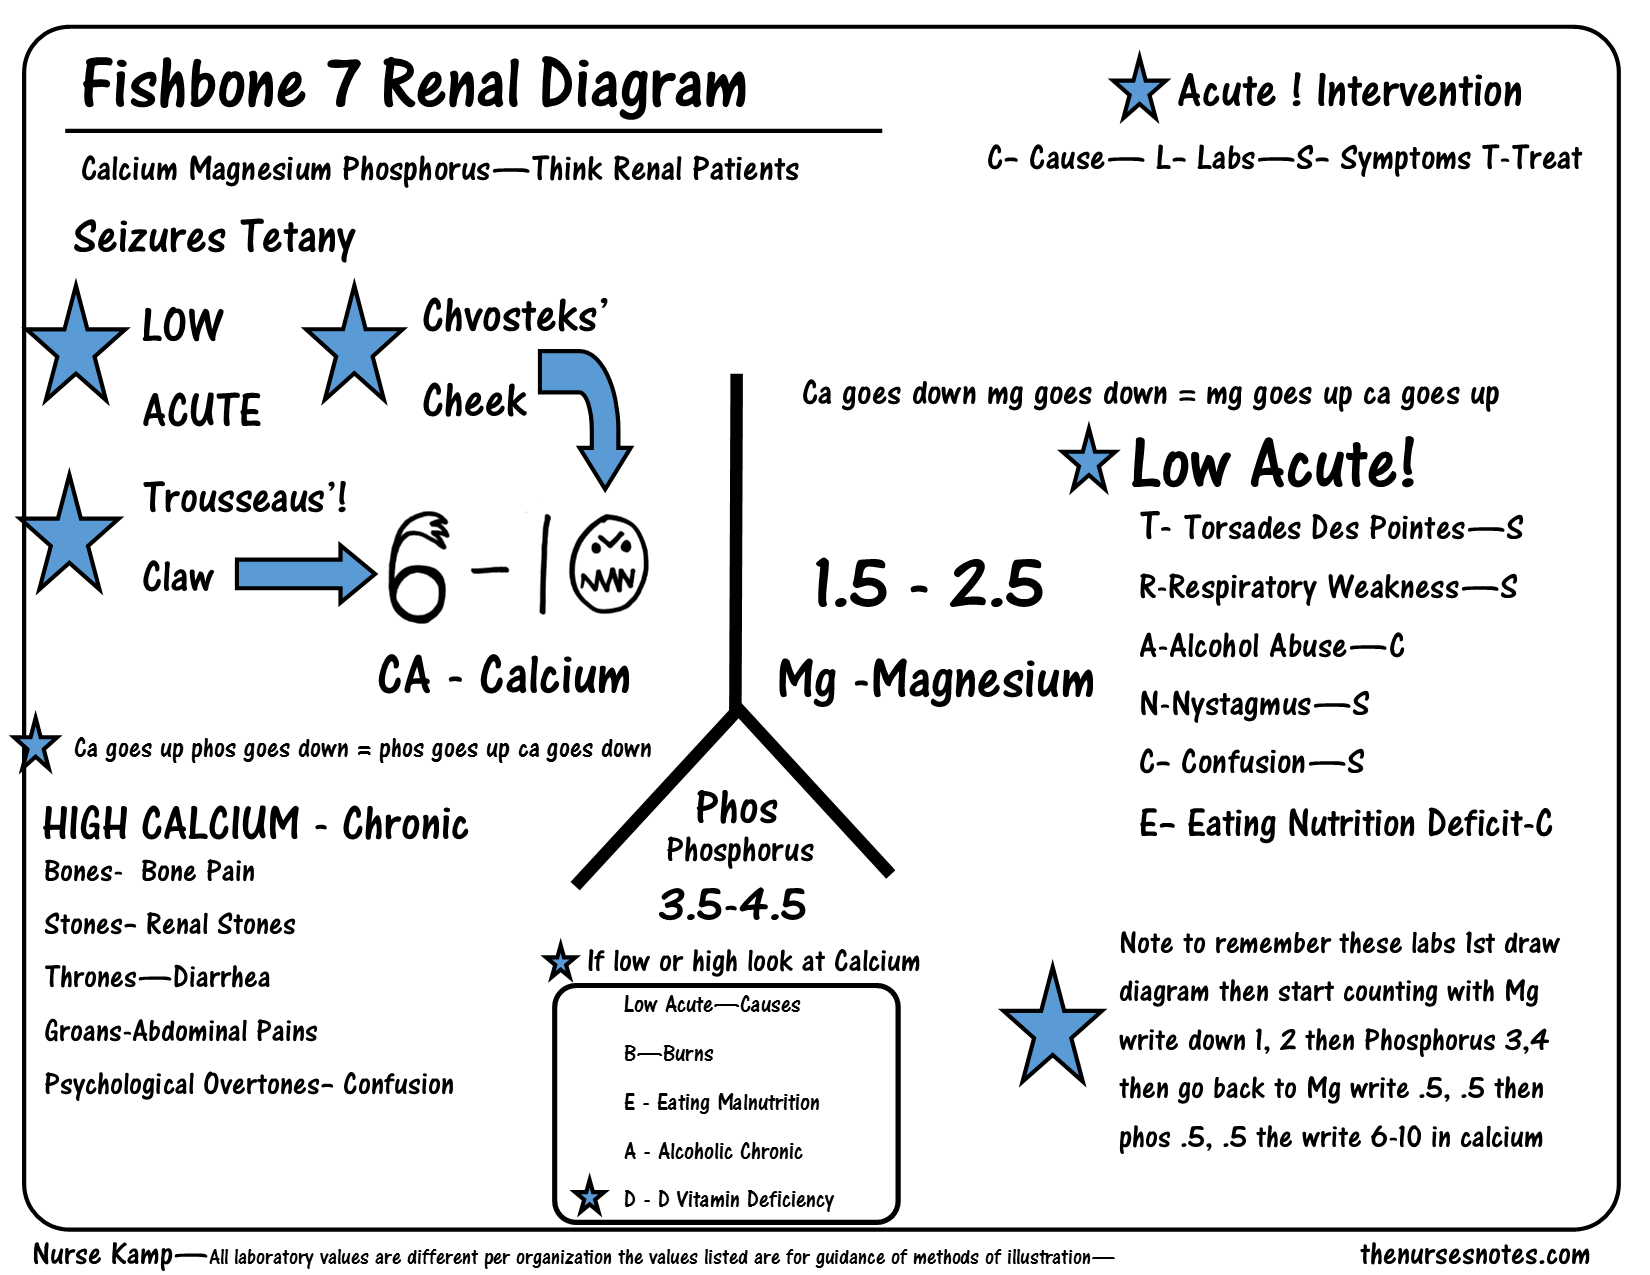 This Is The Seventh Of My Series Explaining The Renal Fishbone Diagram With The Calcium Magnesium And Phosphorus Though Nursing Notes Nerdy Nurse Nursing Labs